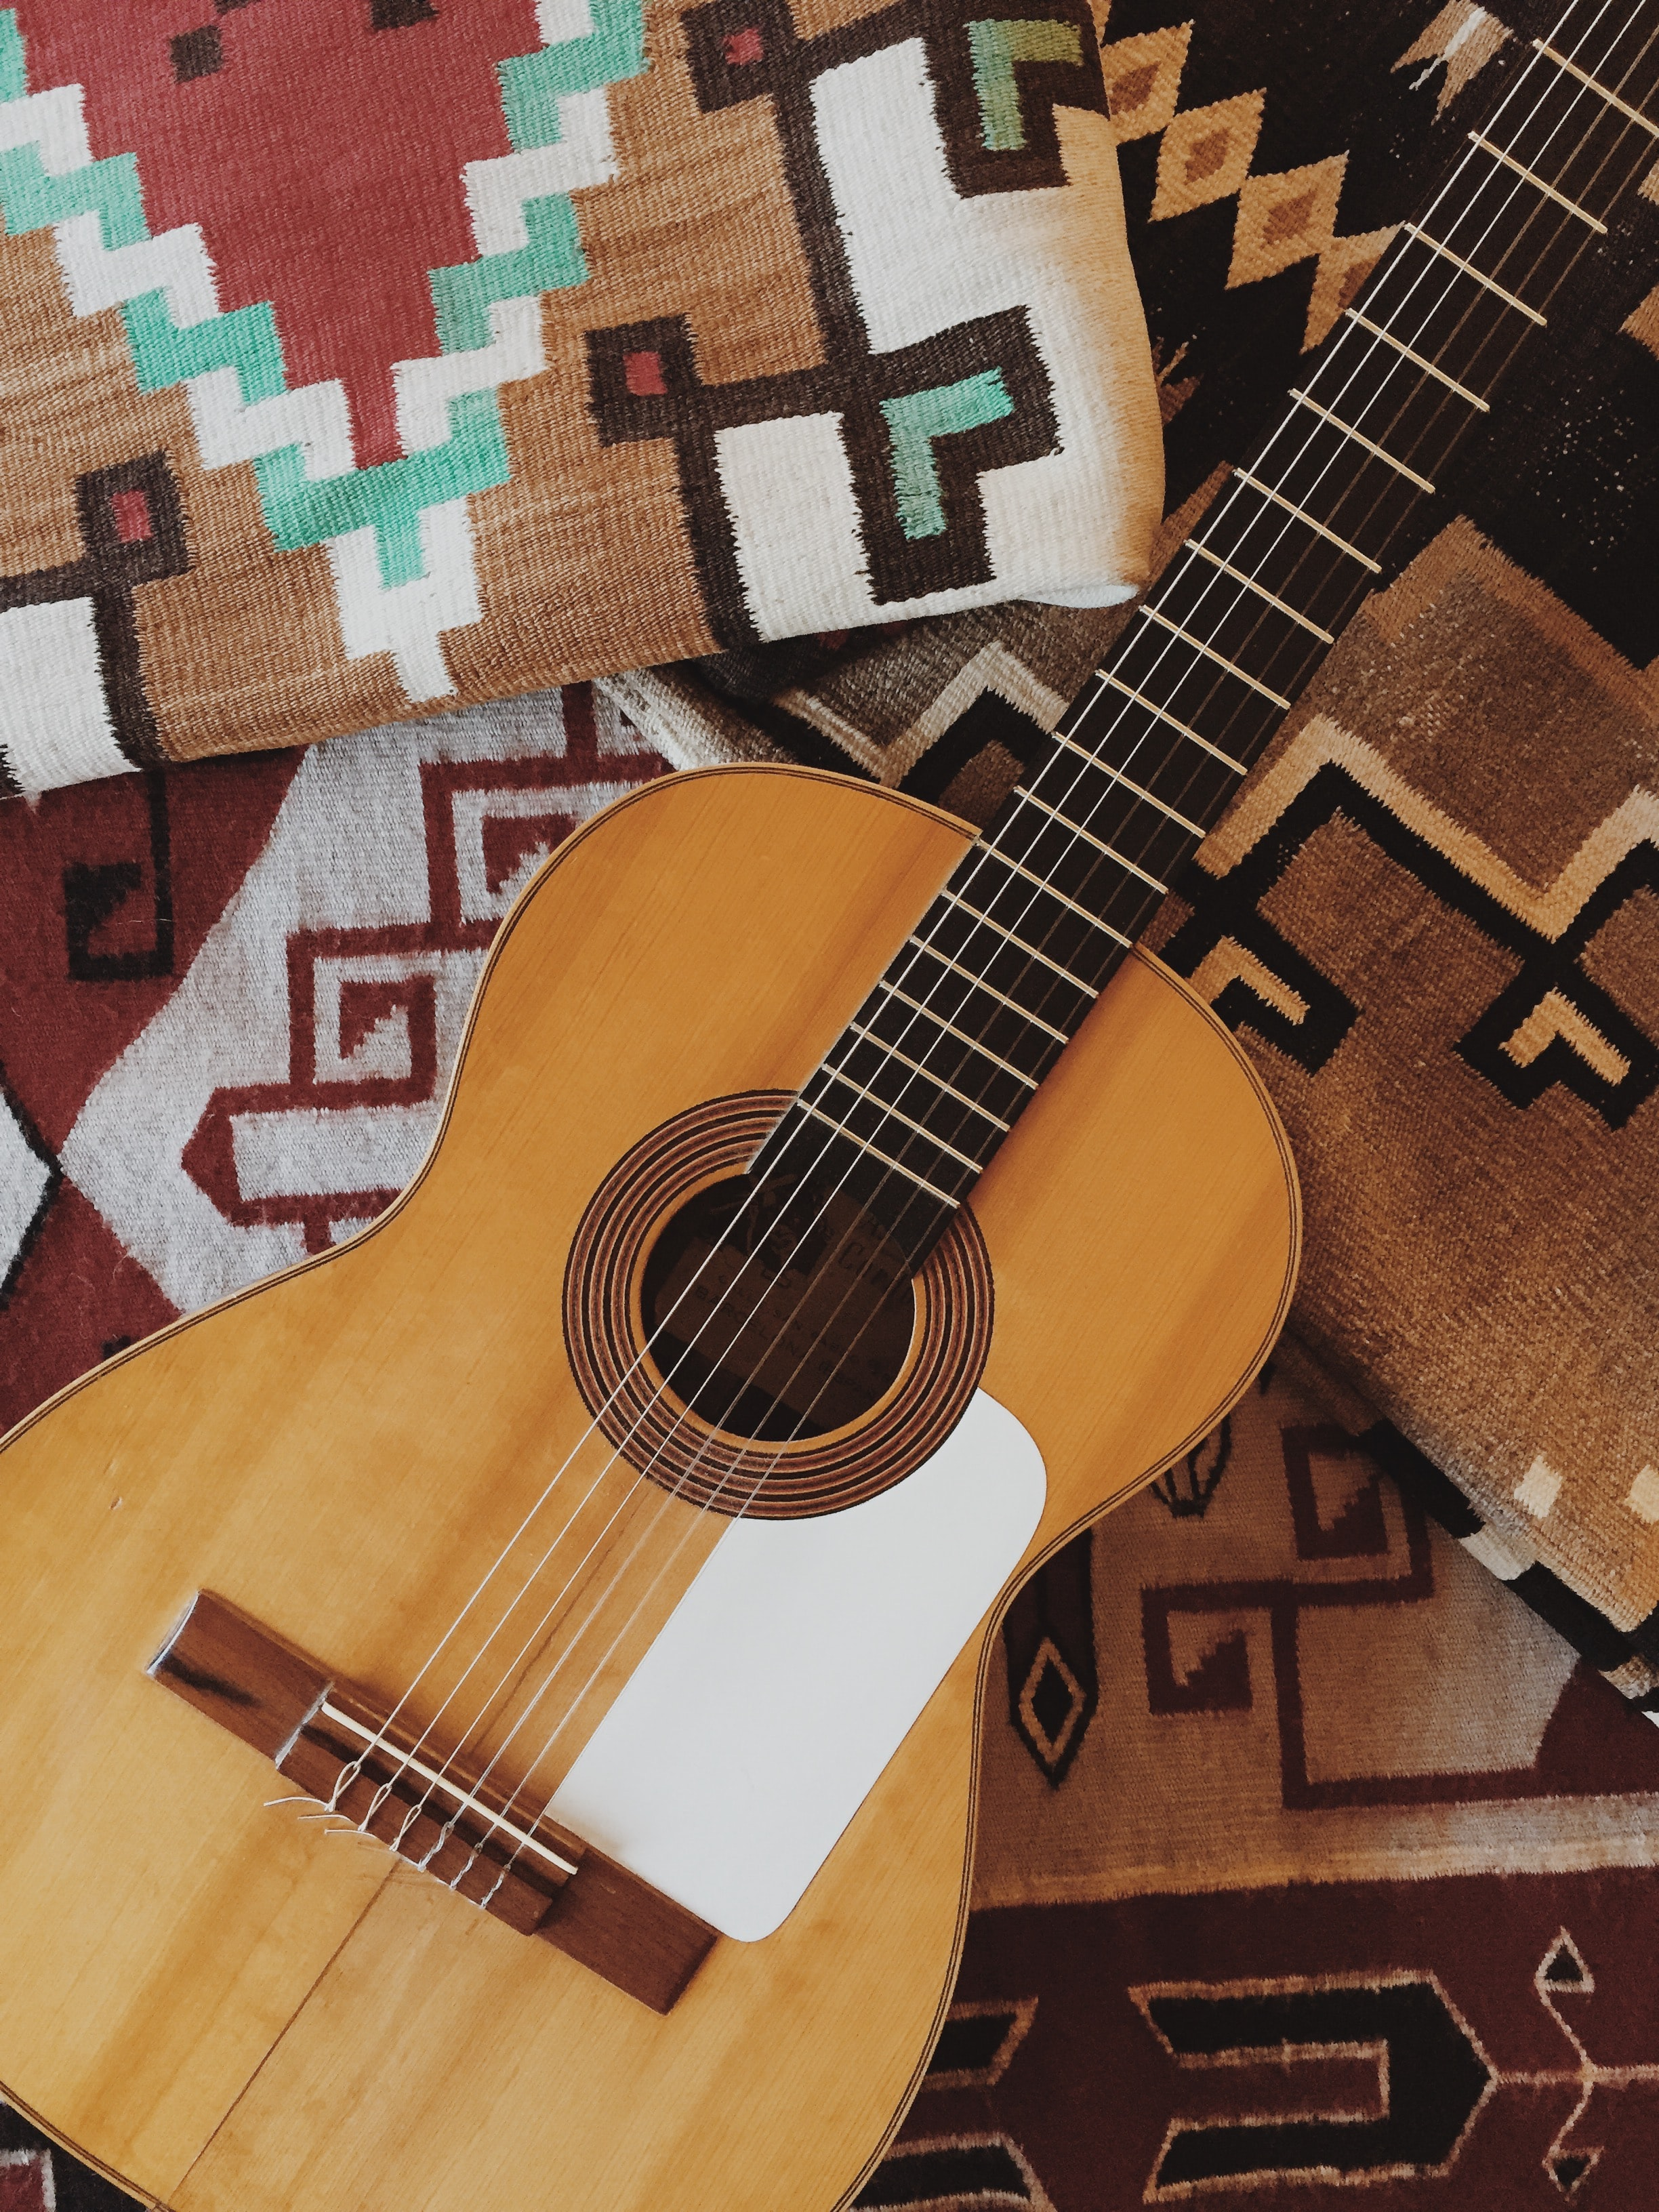 An acoustic guitar and tribal patterned pillows